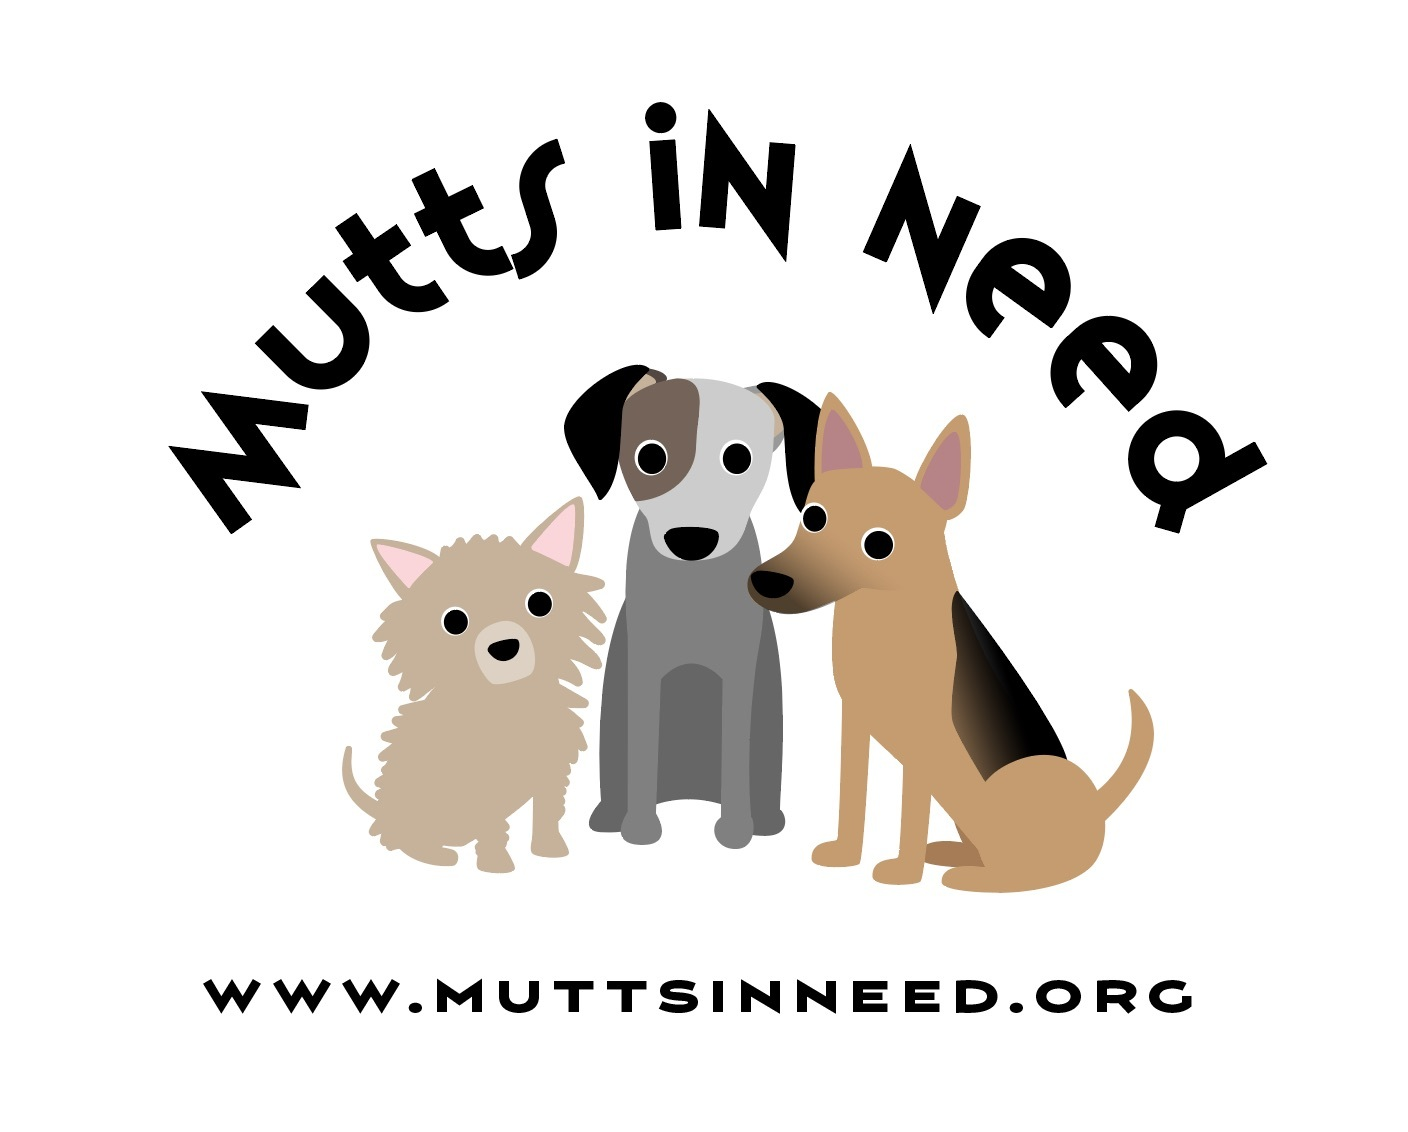 Mutts in Need